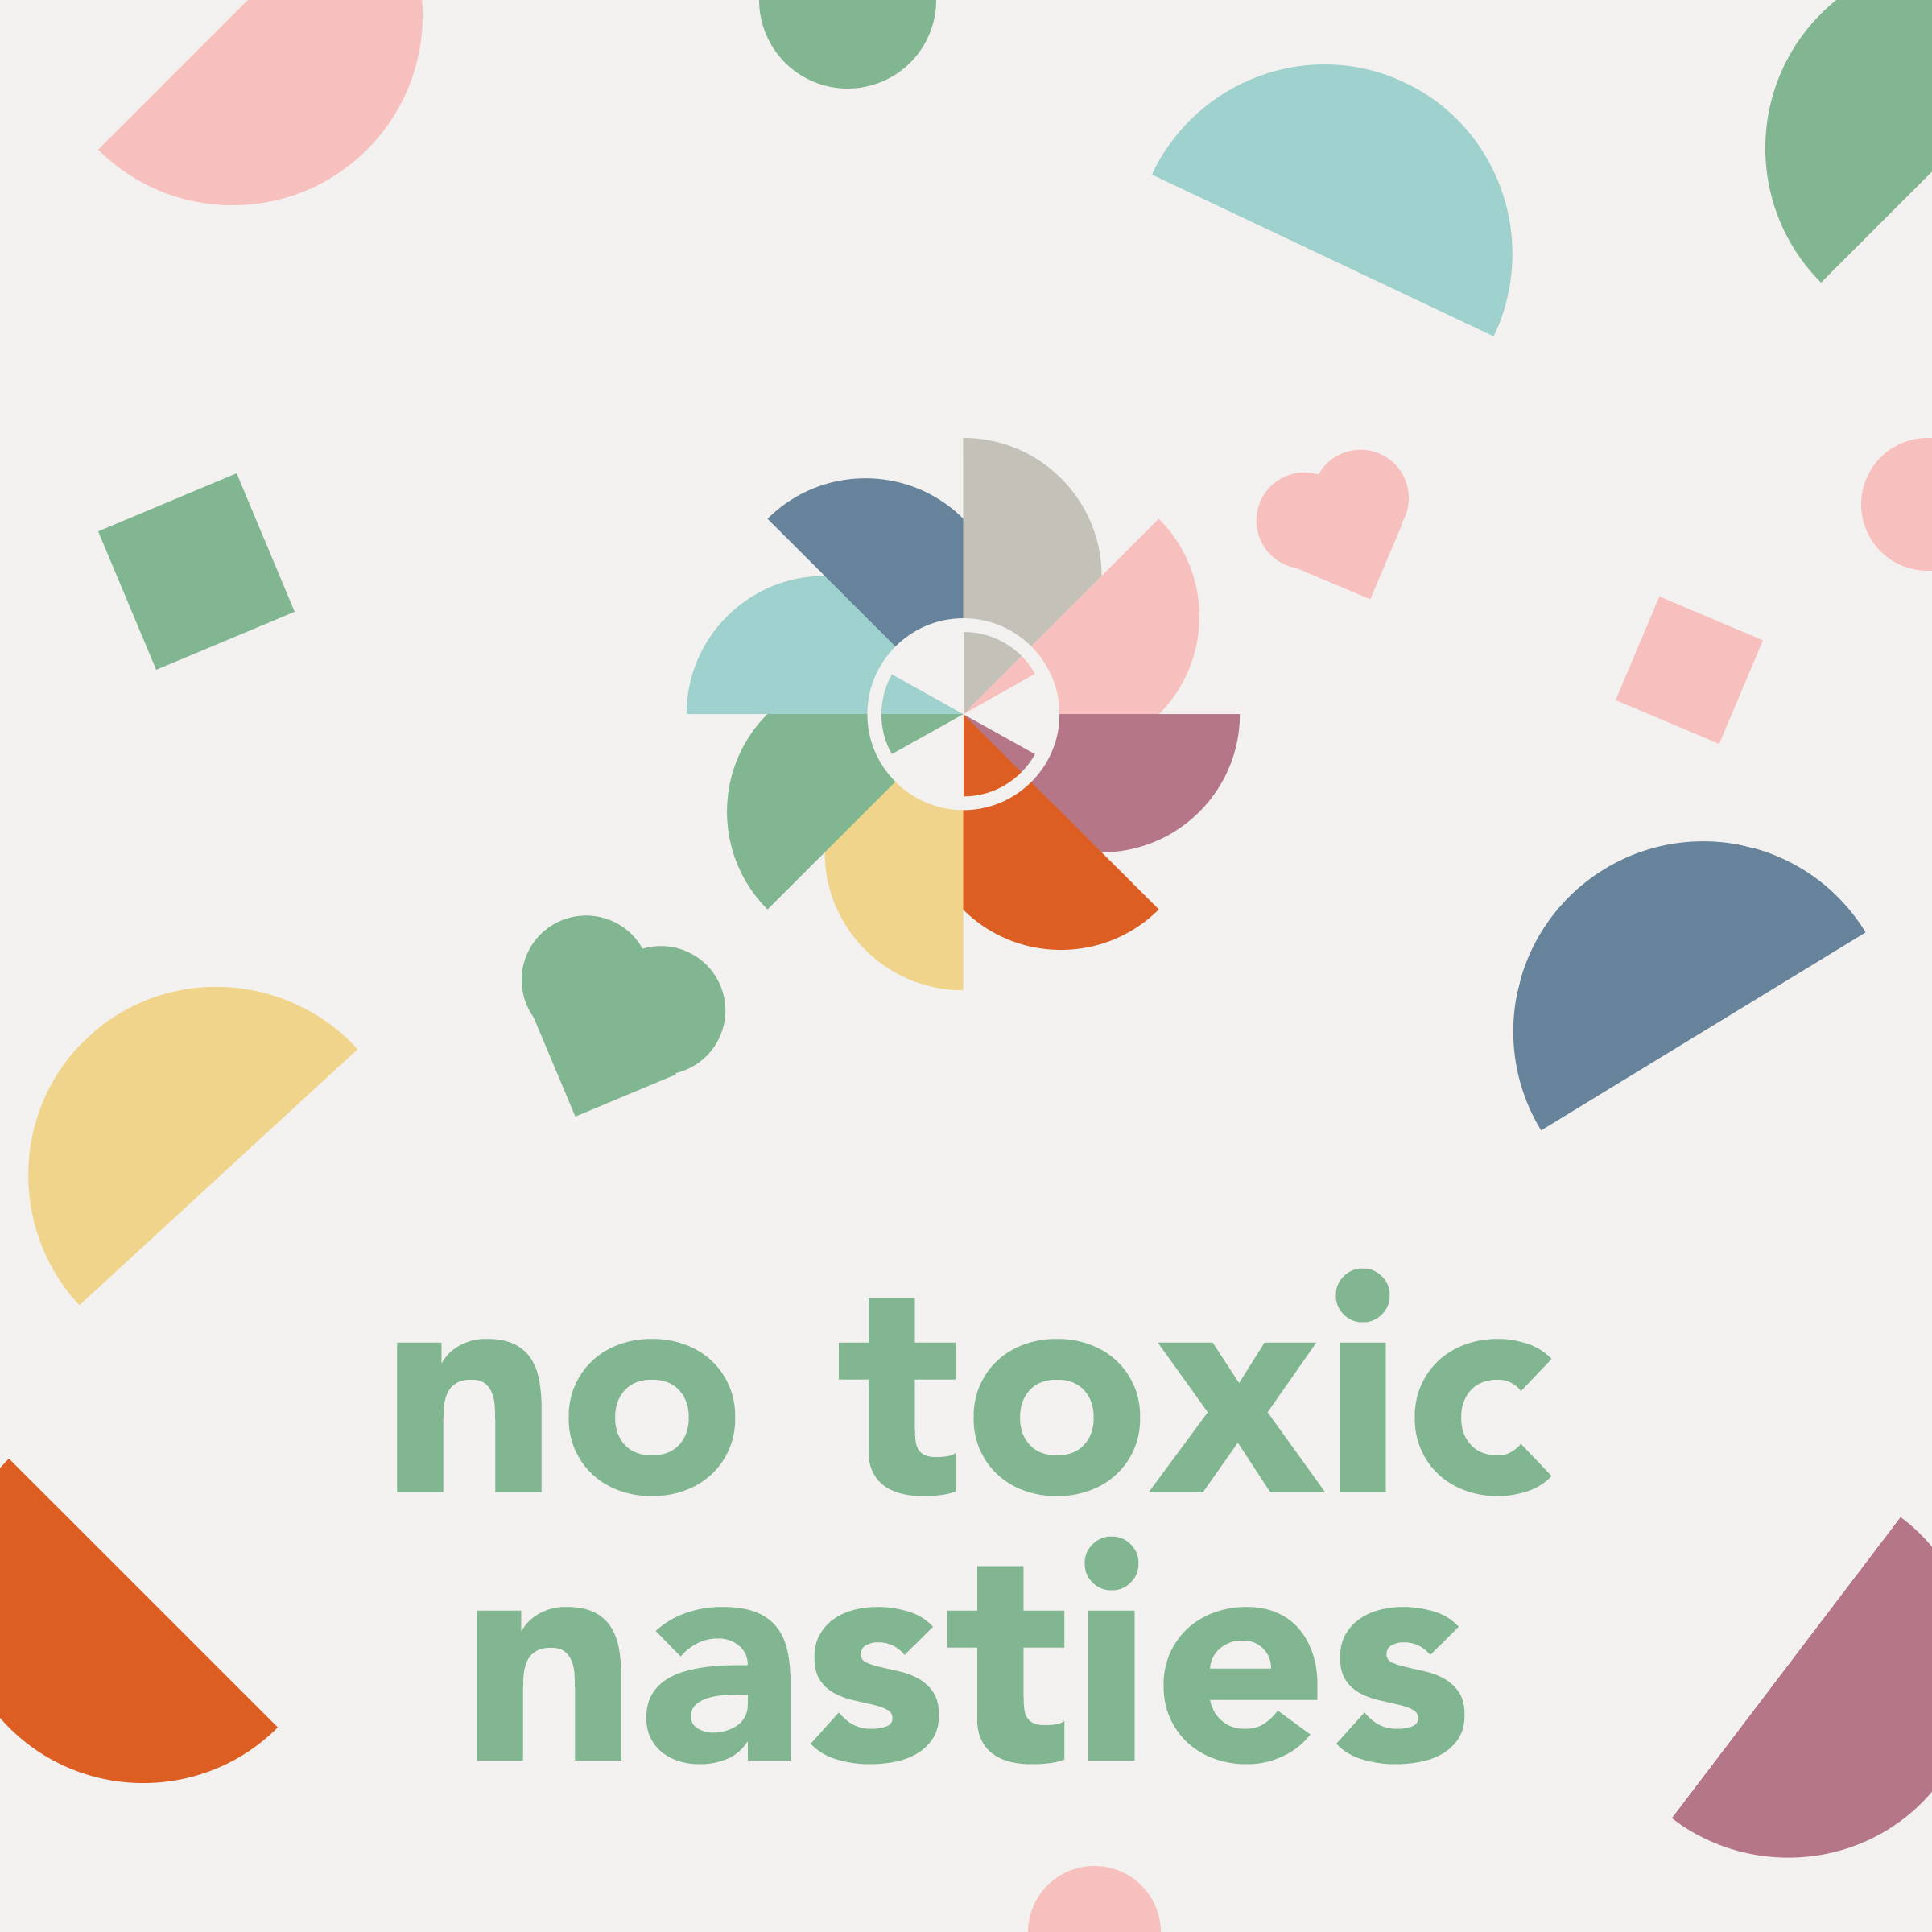 no toxic nasties